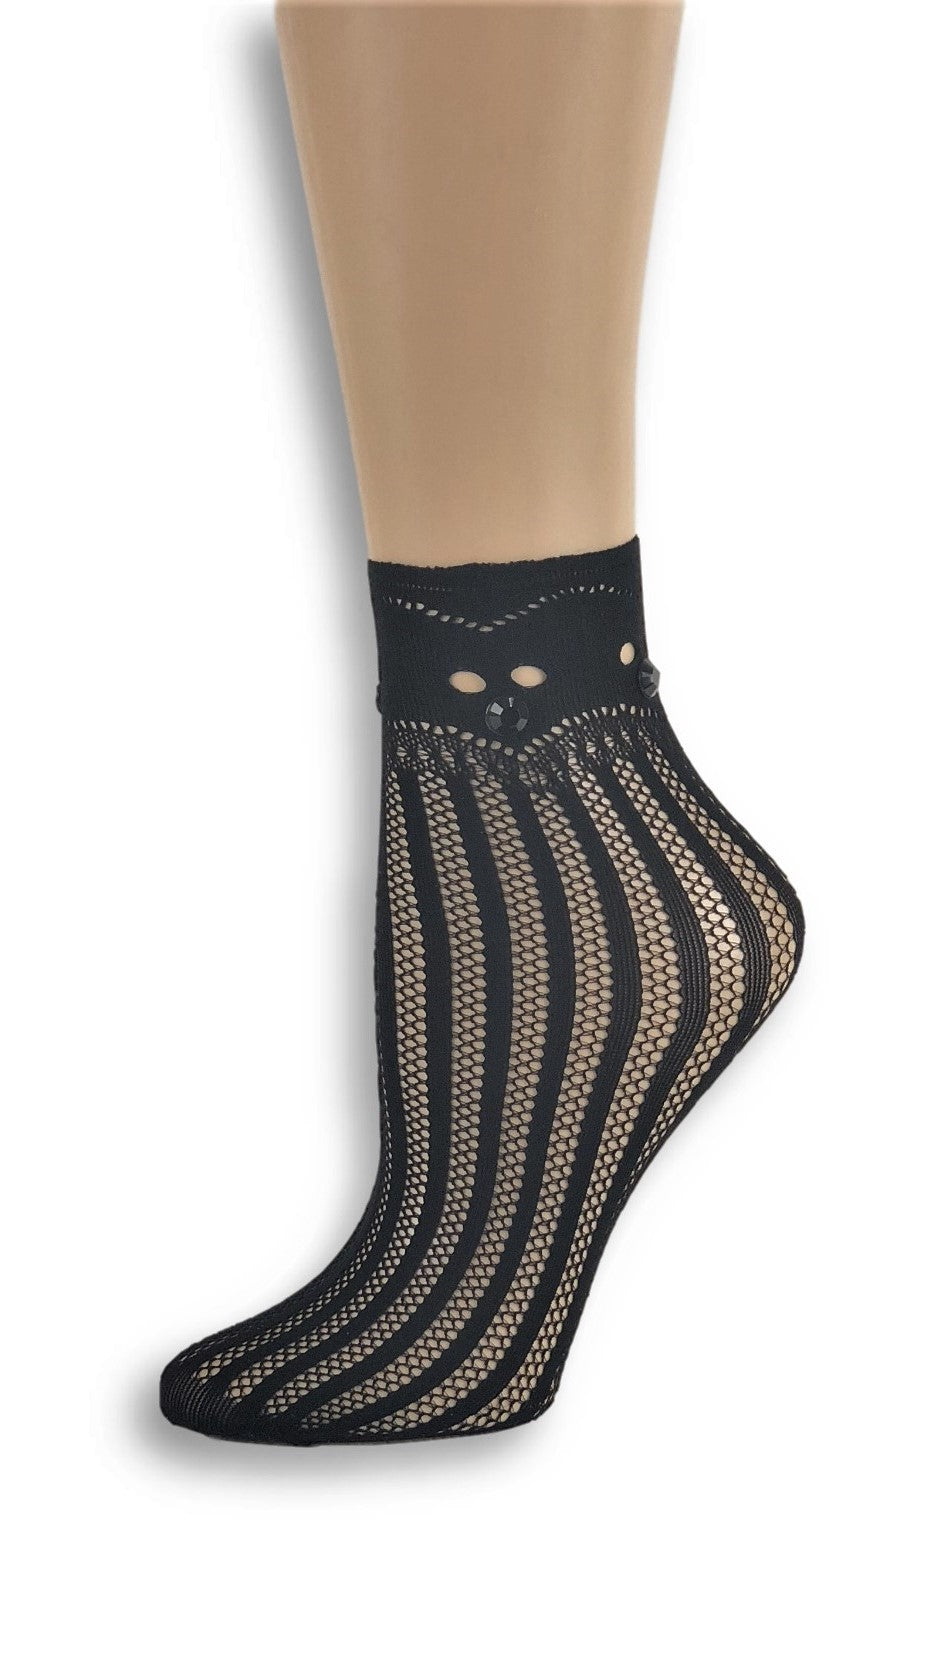 Cinderella Black Custom Mesh Socks with beads - Global Trendz Fashion®